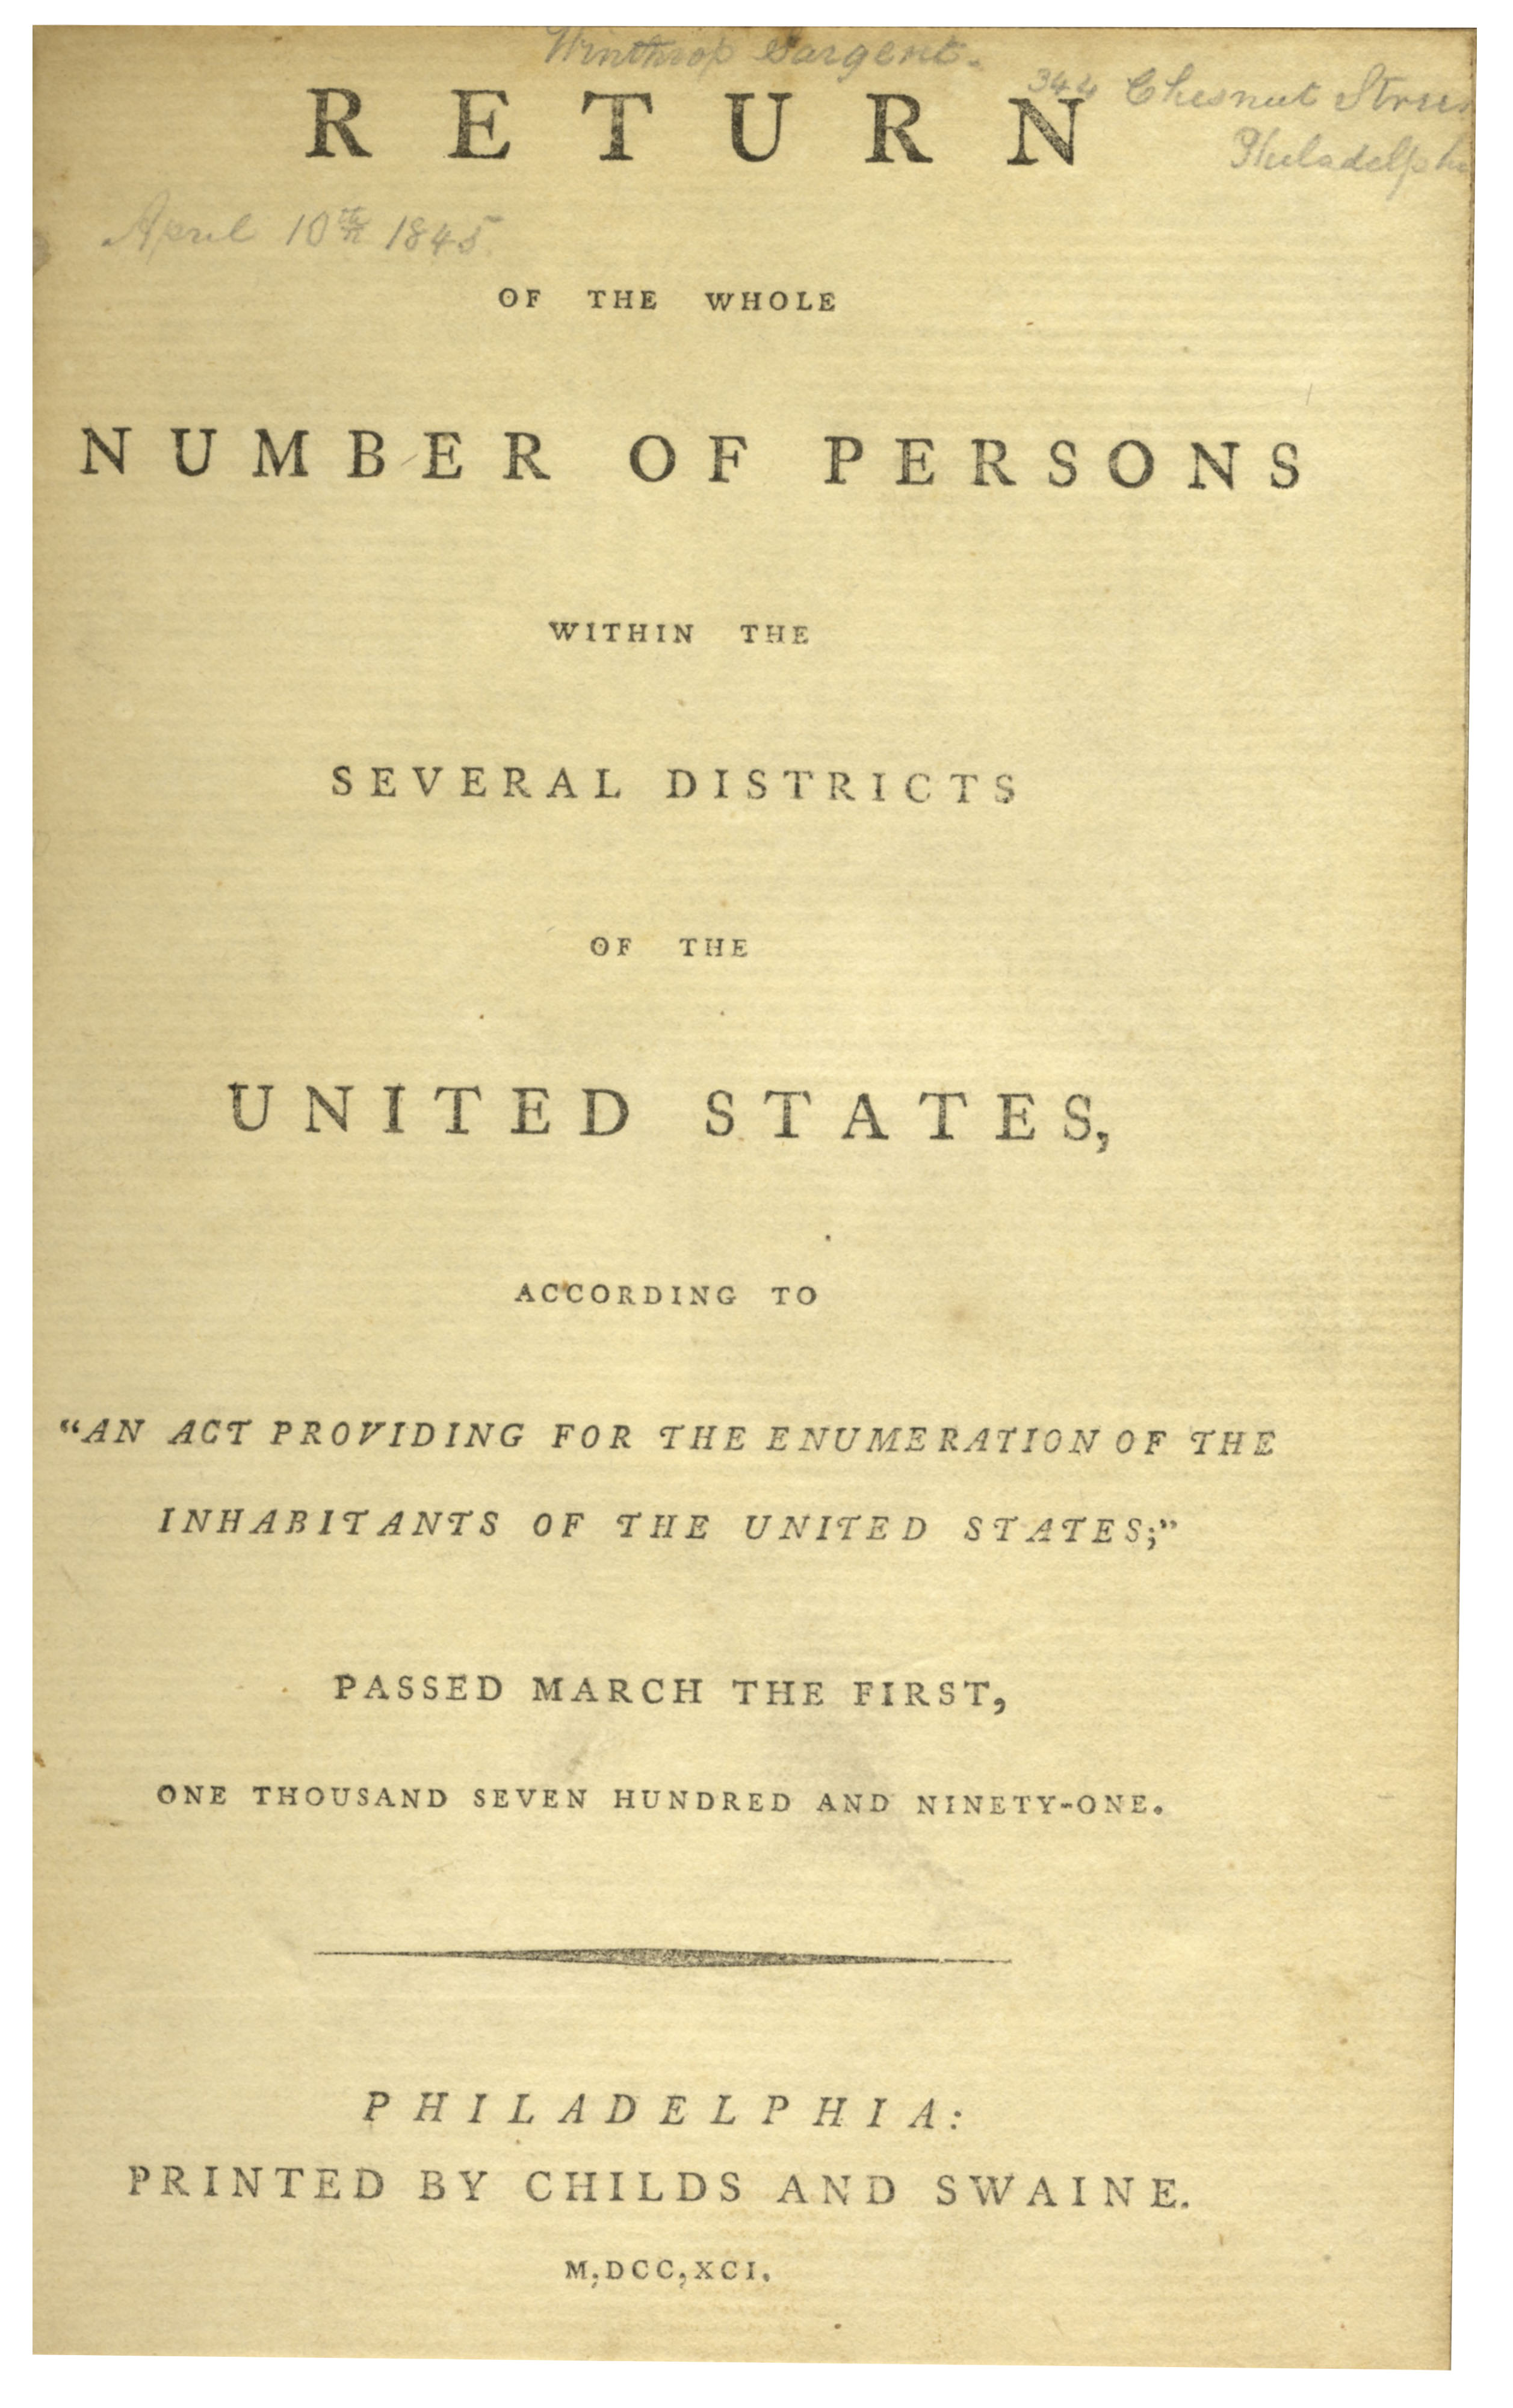 Sell Your Thomas Paine Common Sense 1st Edition At Nate D